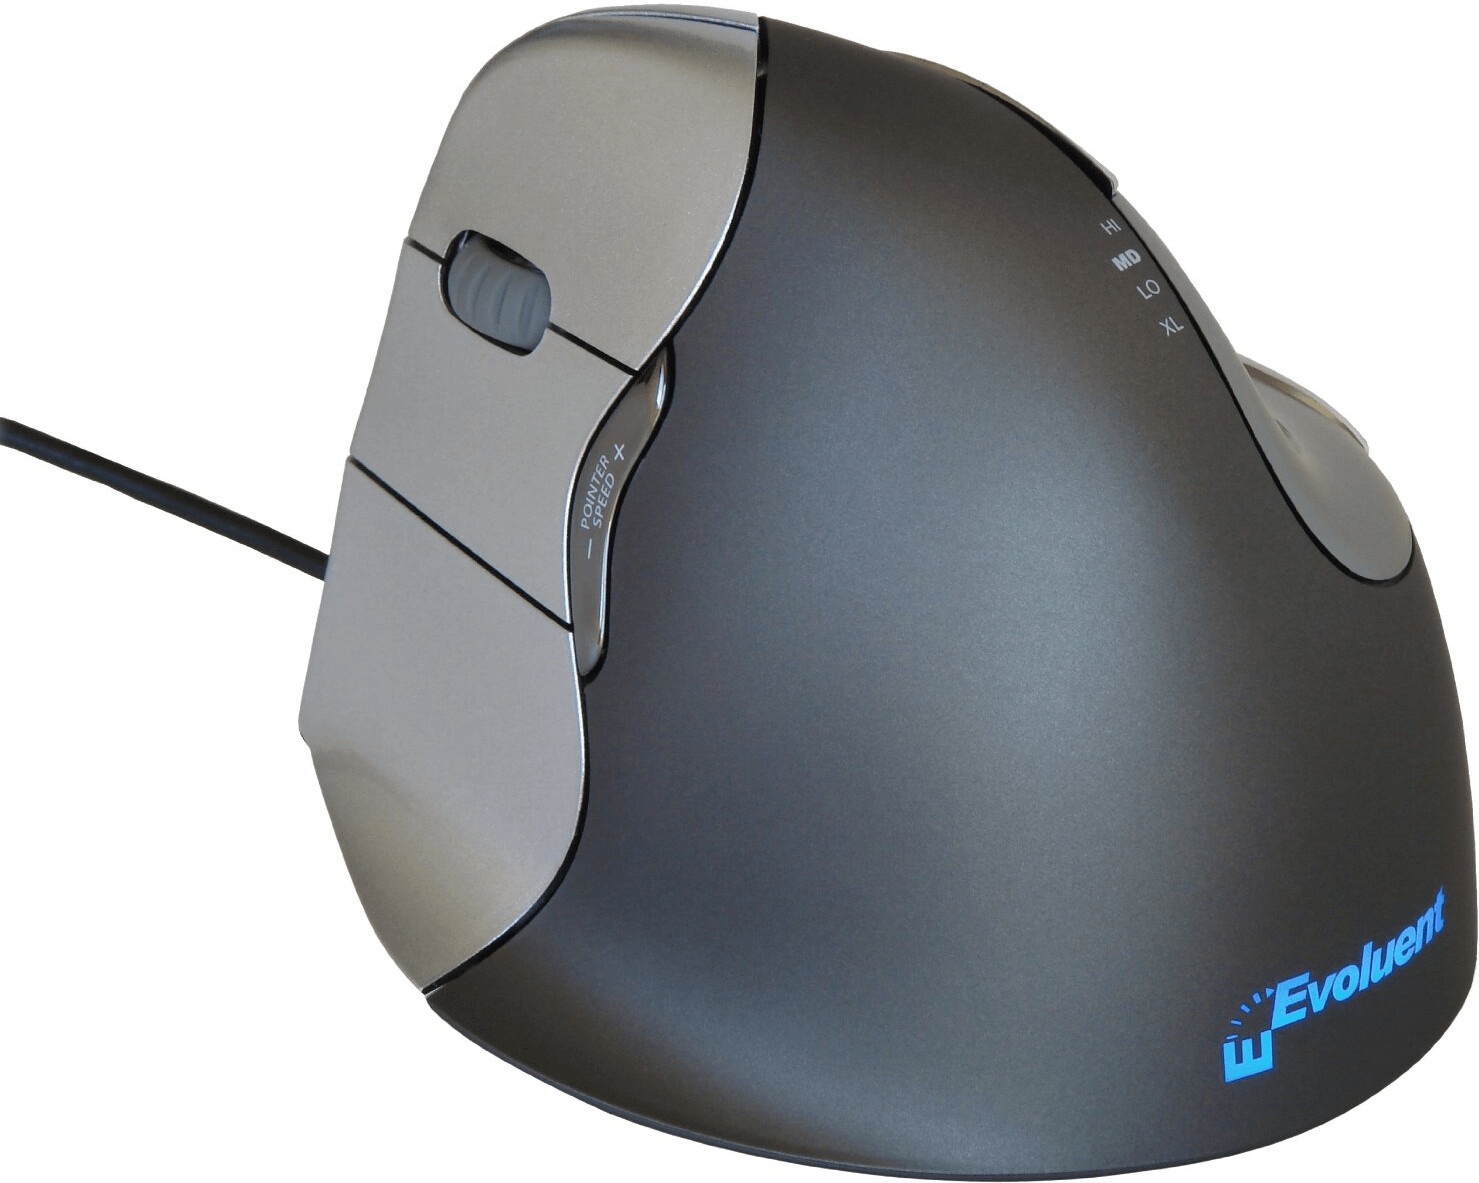 Image of Evoluent Vertical Mouse 4